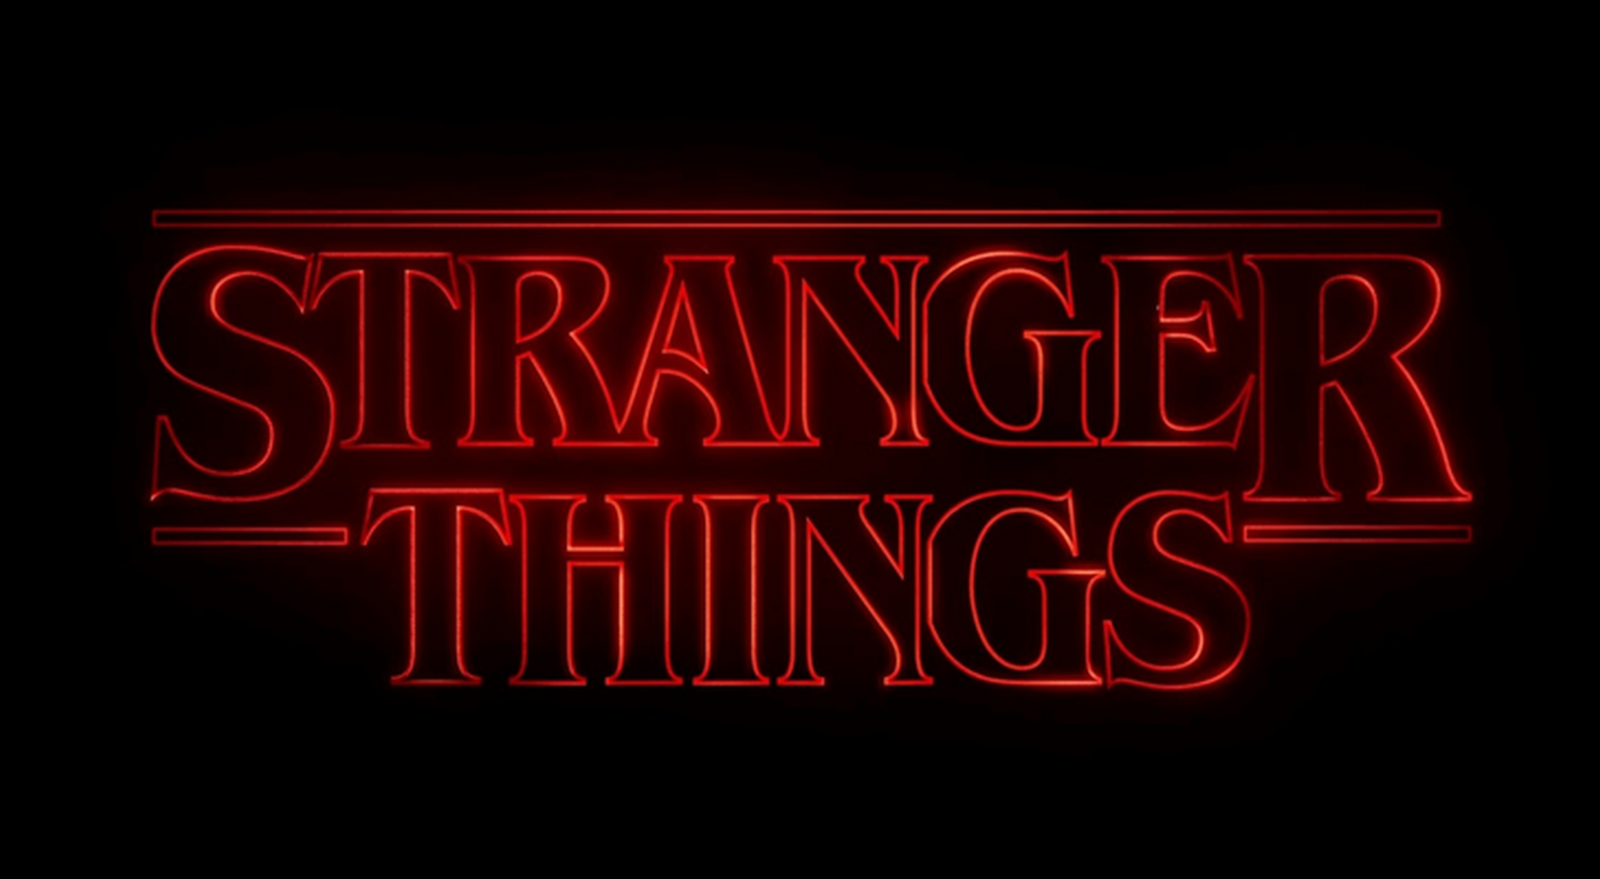 Stranger Things Directed by - The Duff brothers and Shawn Levy. - Sheet1